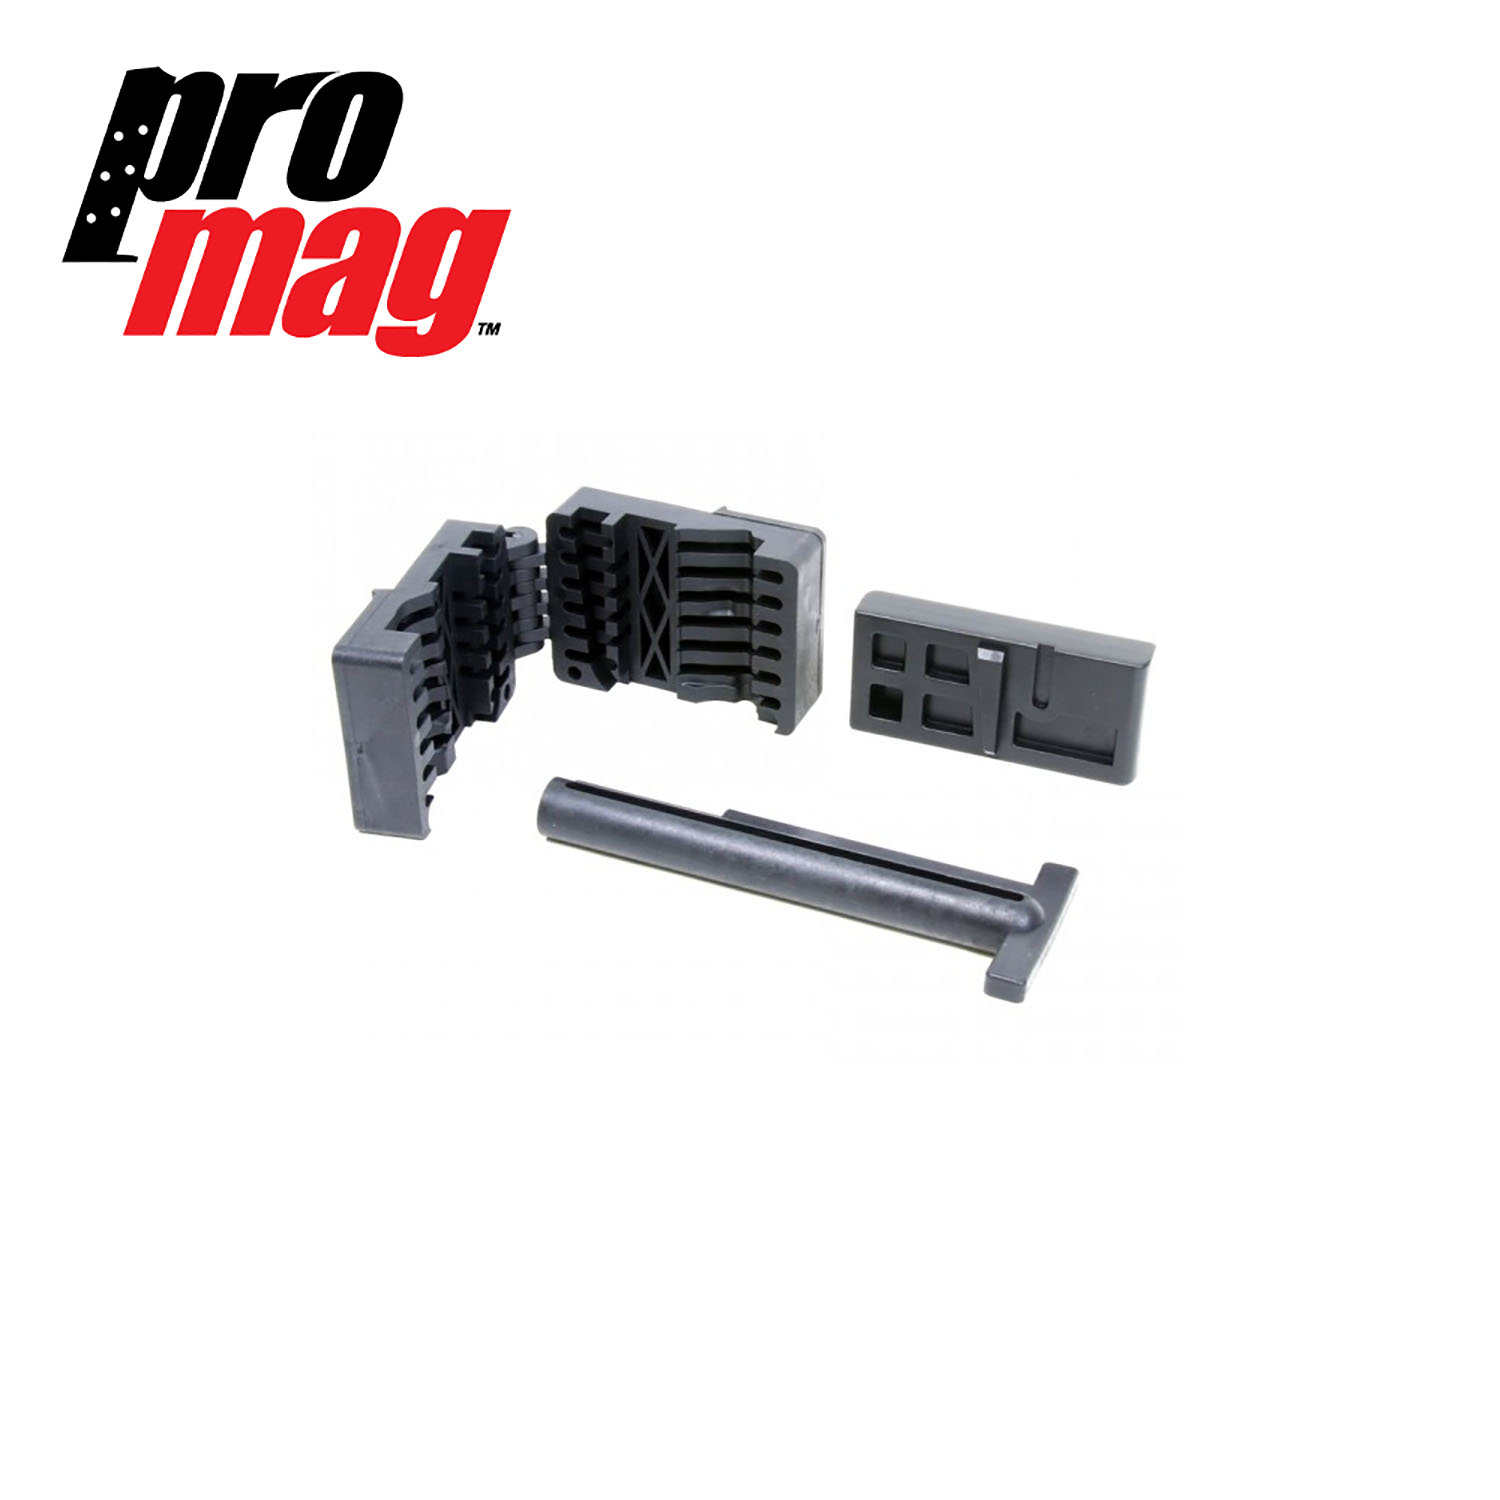 Promag AR-15 / M16 Upper And Lower Receiver Vise Block Set: Midwest Gun  Works